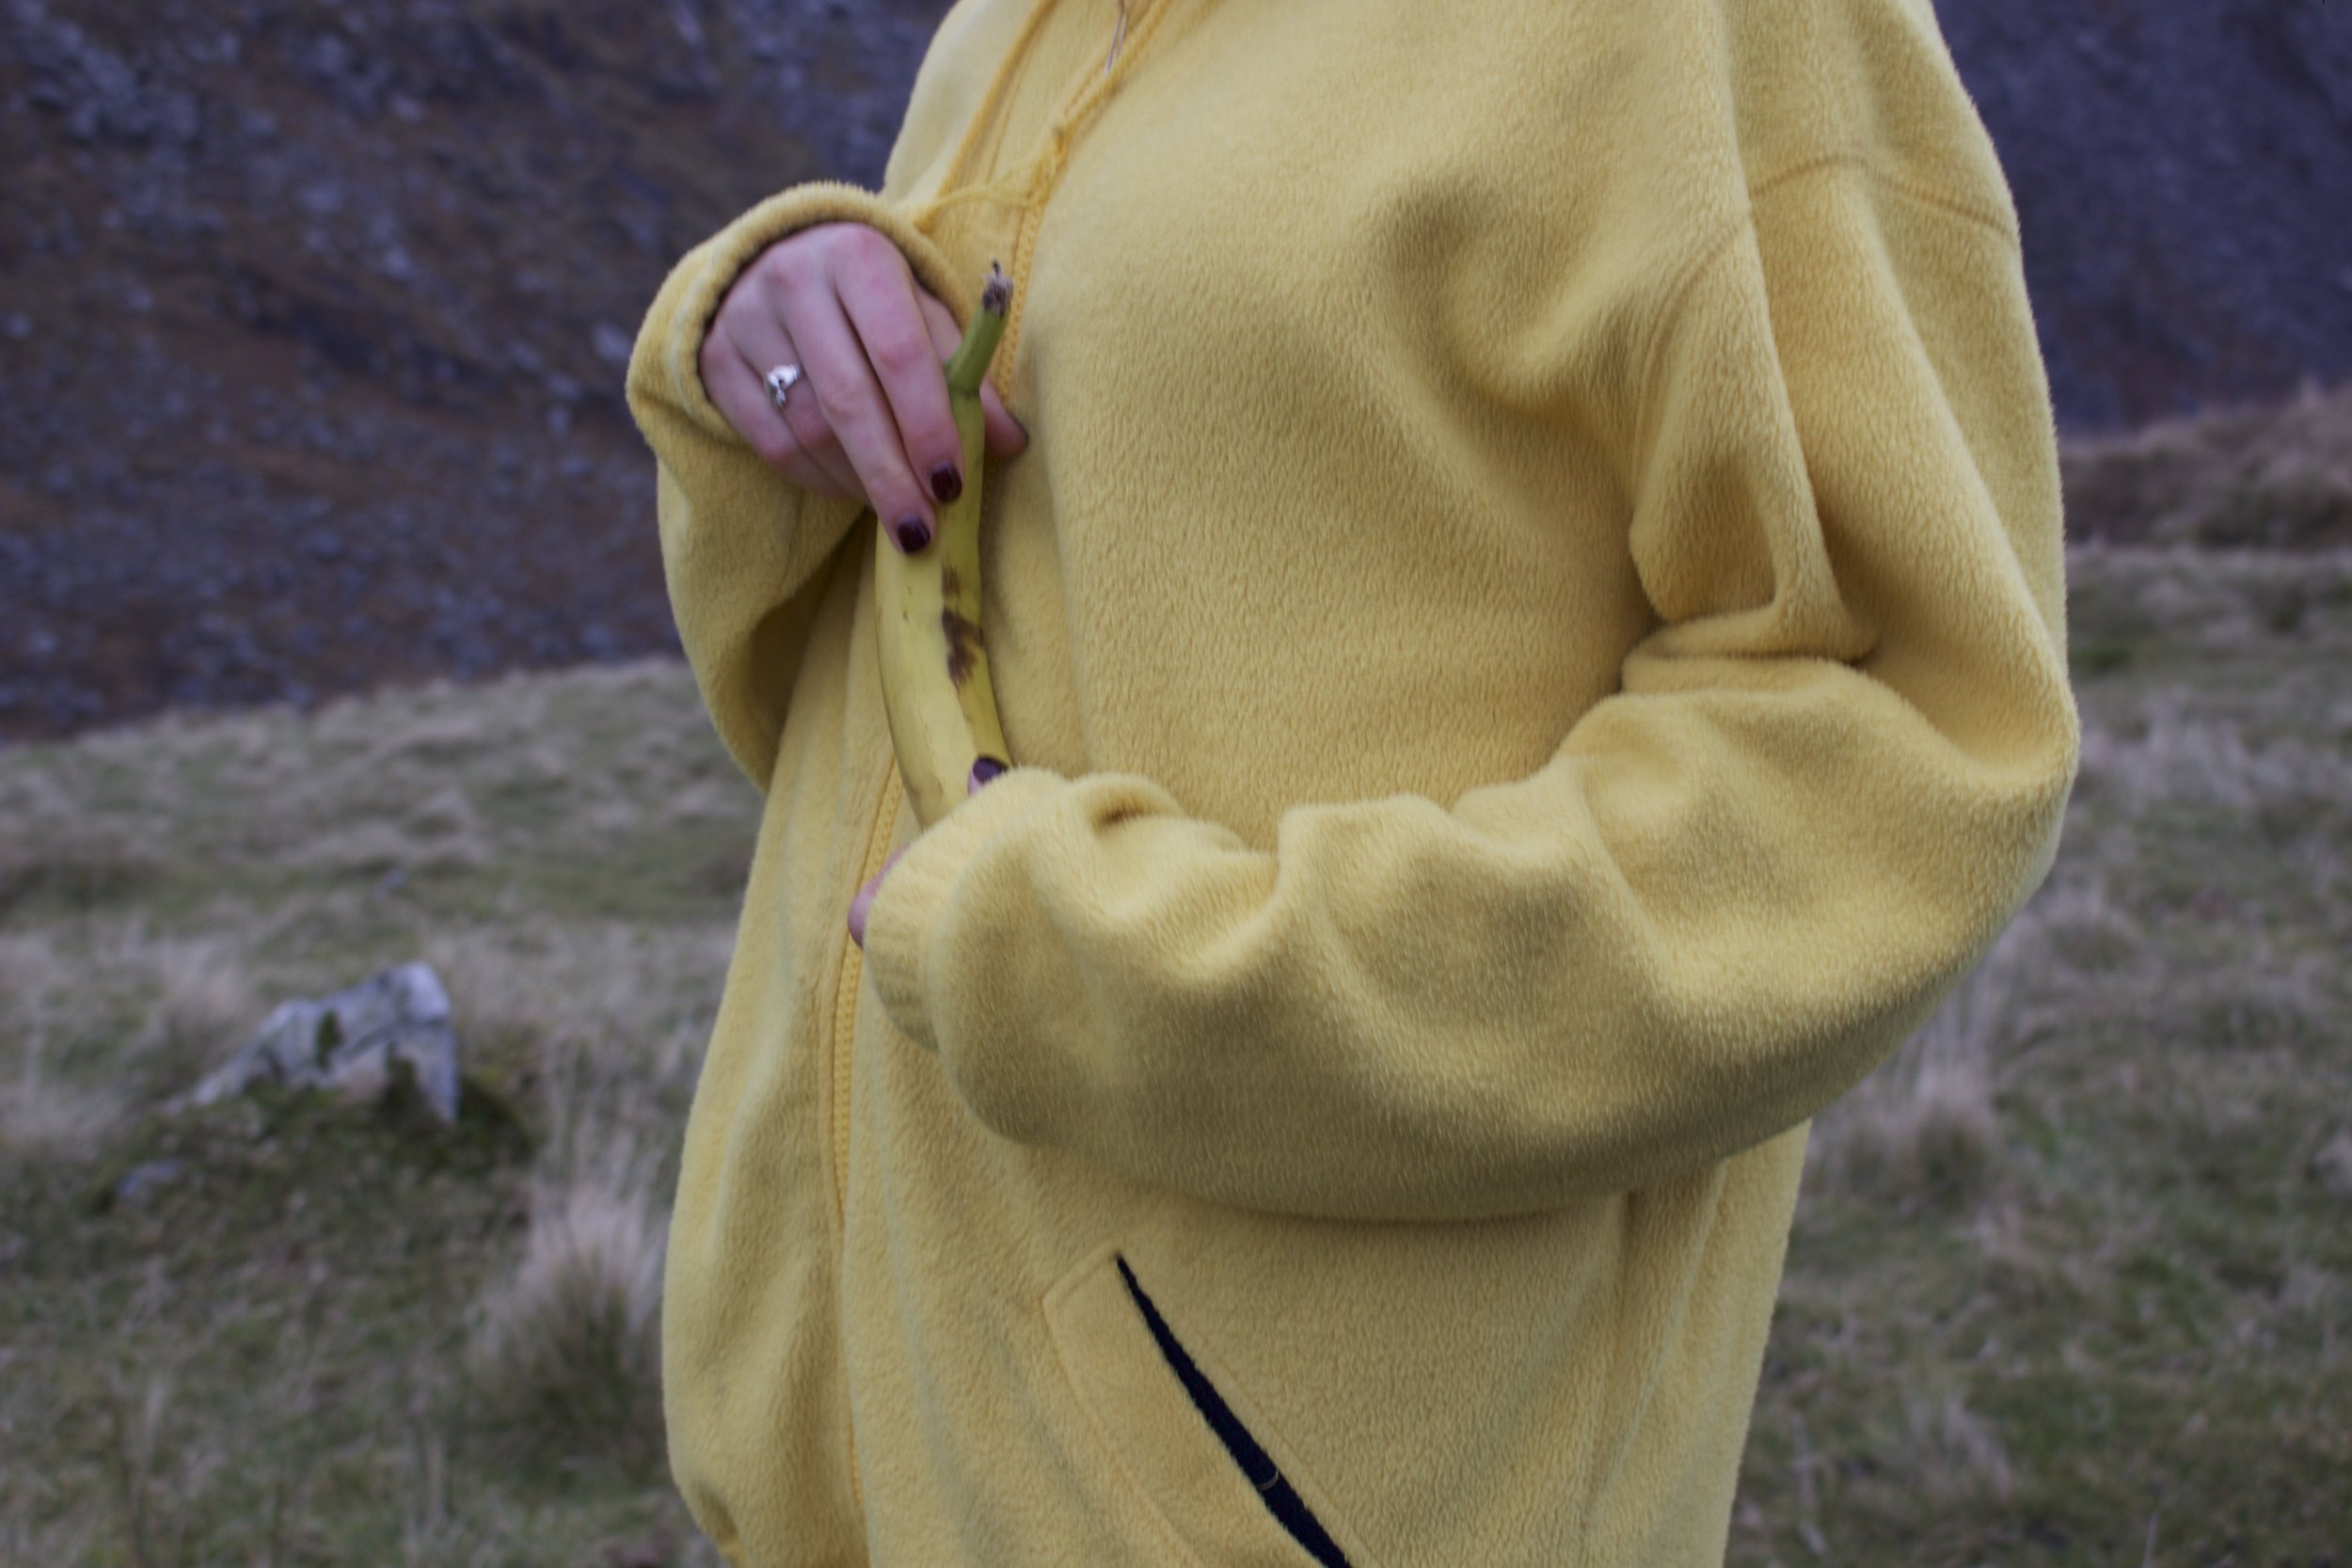 The famous 'banana' fleece